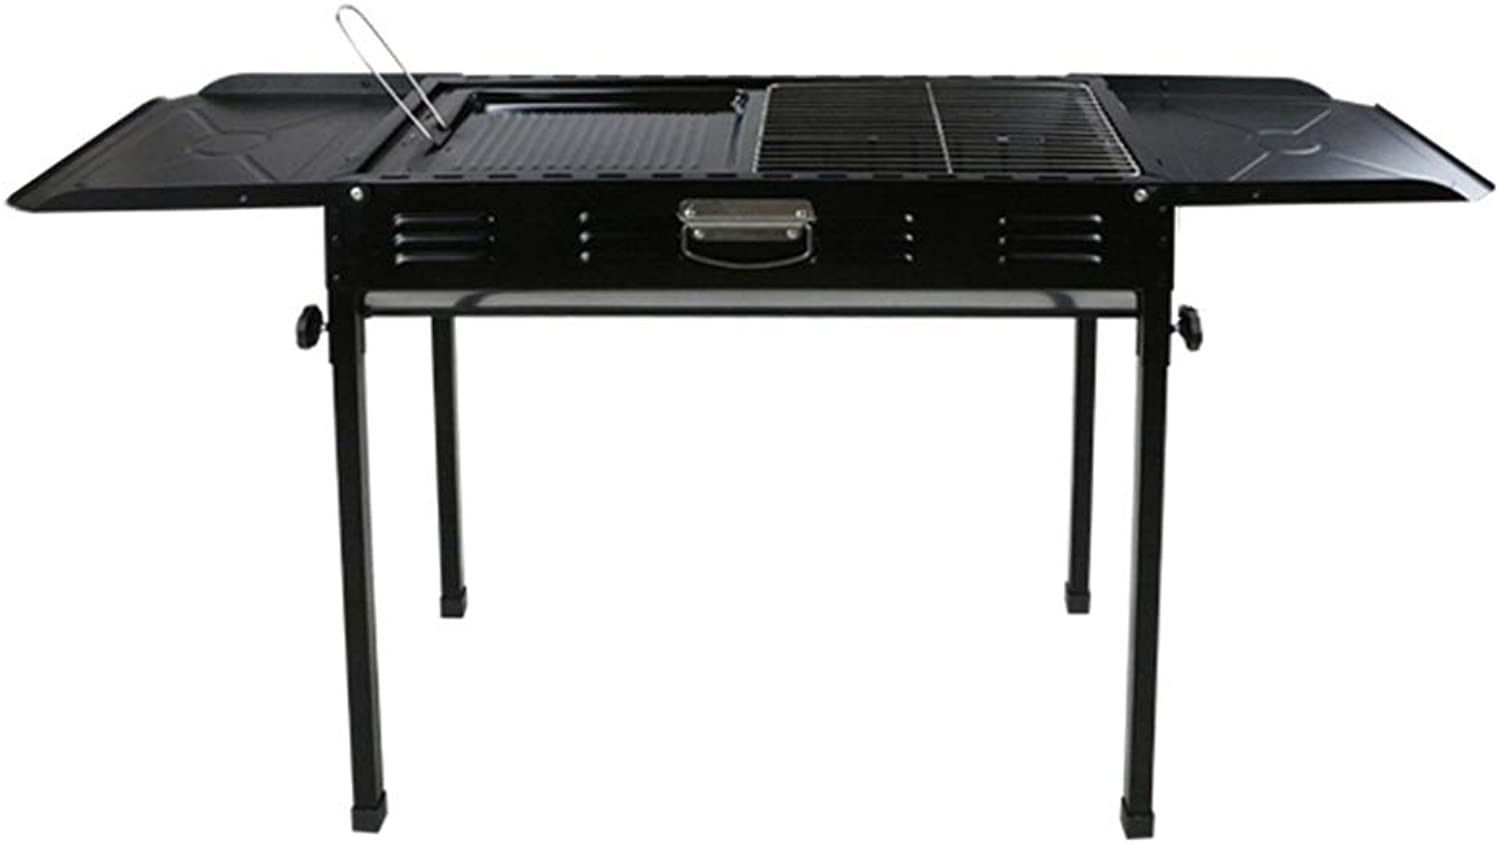 BBQ Supplies Barbecue Easy Barbecues Set Charcoal BBQ Home Grill Stainless Steel Grill Portable Wild Carbon Oven Foldable BBQ Grill Travel Outdoor Barbecue Tool